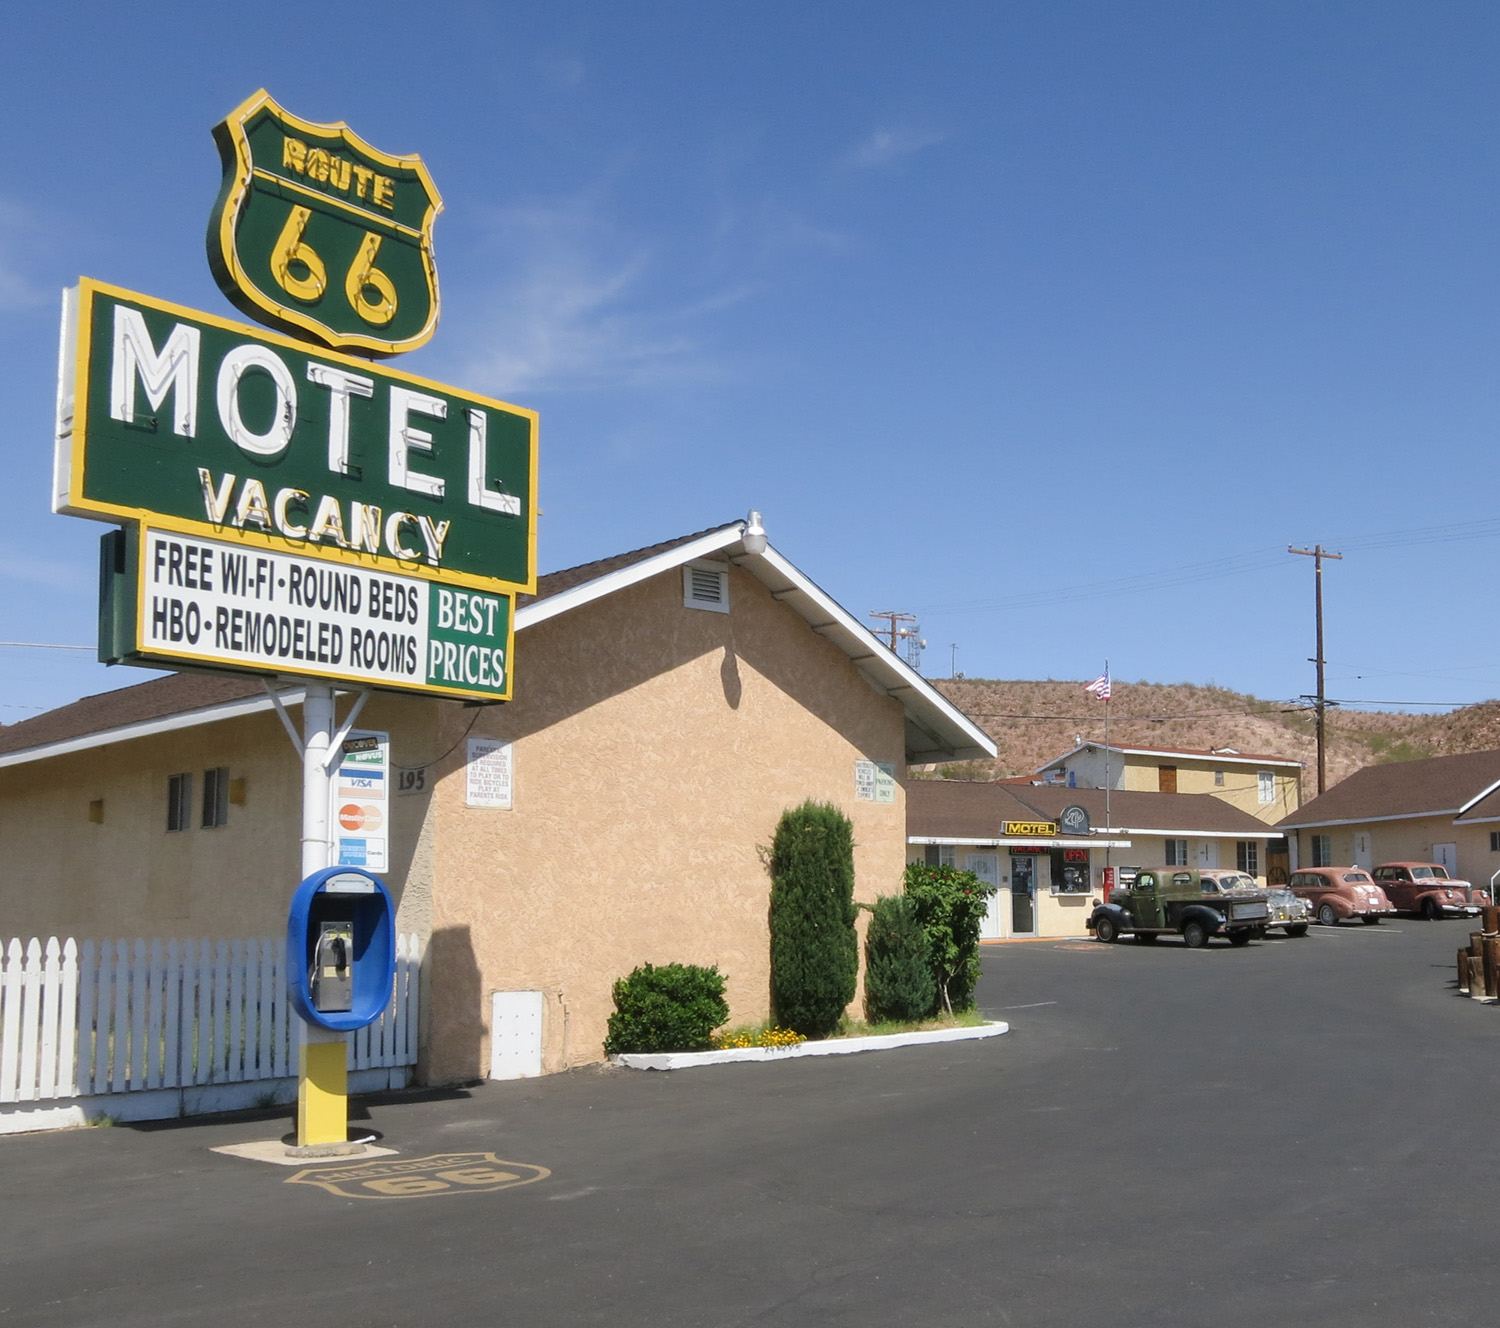 Motel 6 Las Vegas - I is conveniently located less than a mile from the famous Las Vegas Strip. Dining and shopping is nearby. Entertainment is within 1 mile. .